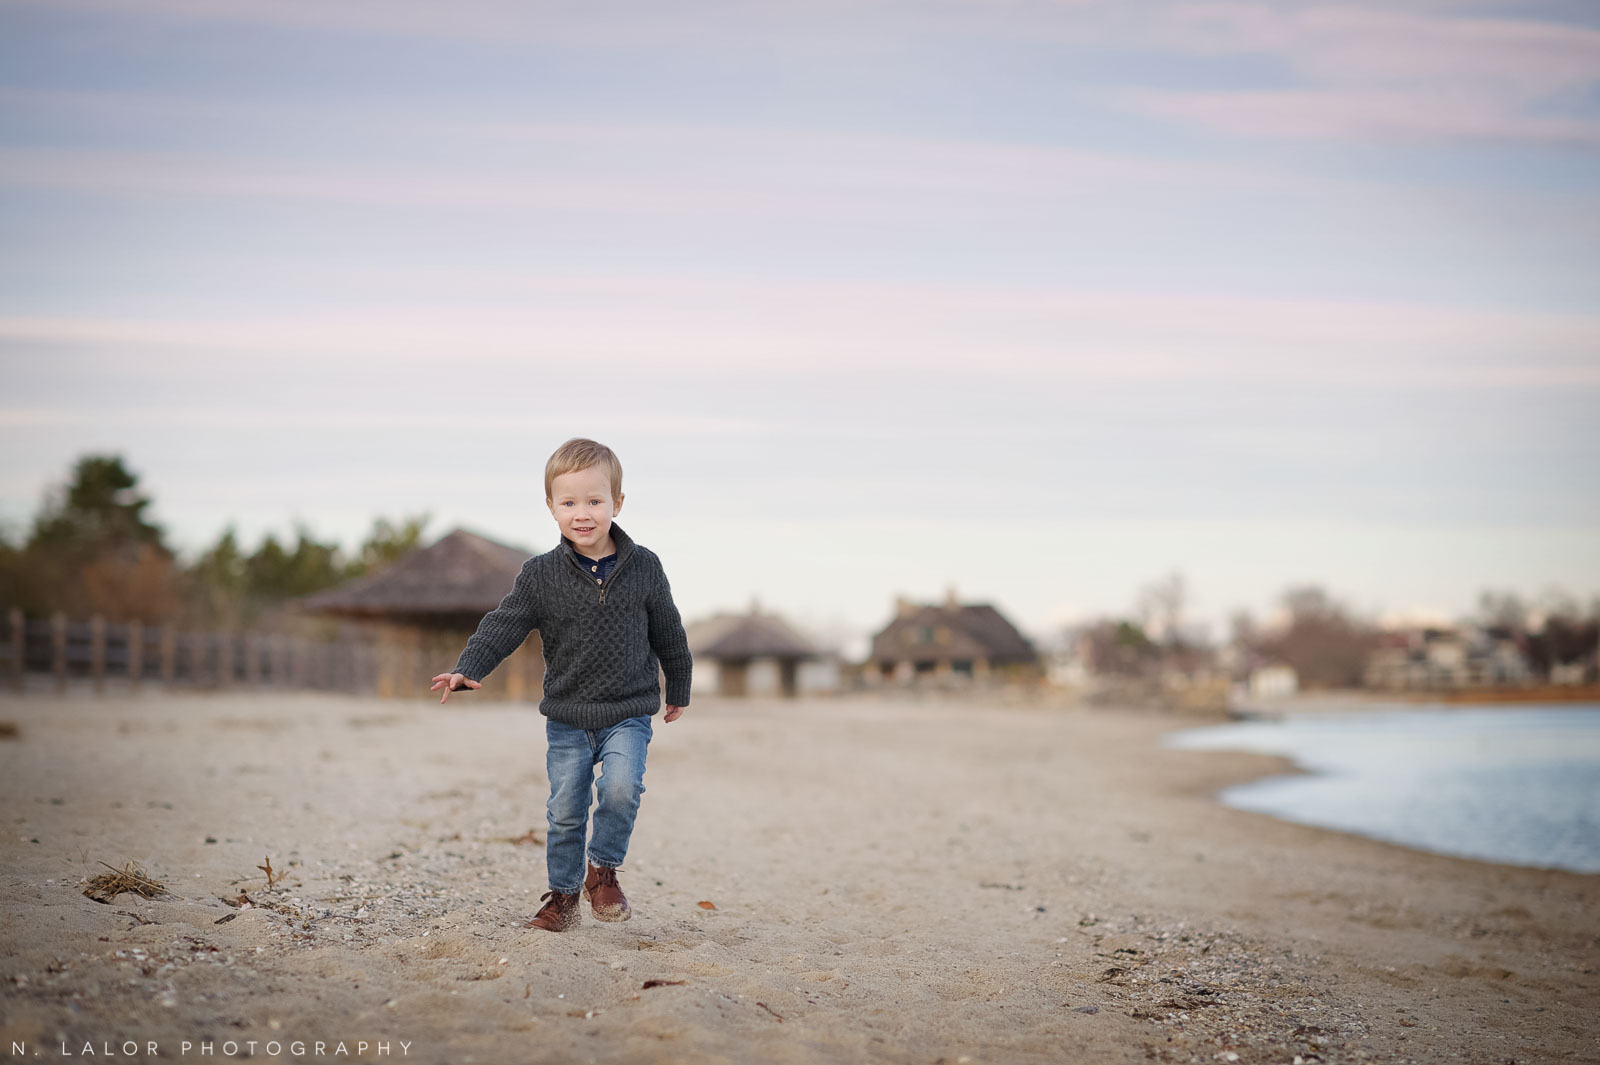 nlalor-photography-120613-styled-boy-winter-beach-session-old-greenwich-1.jpg